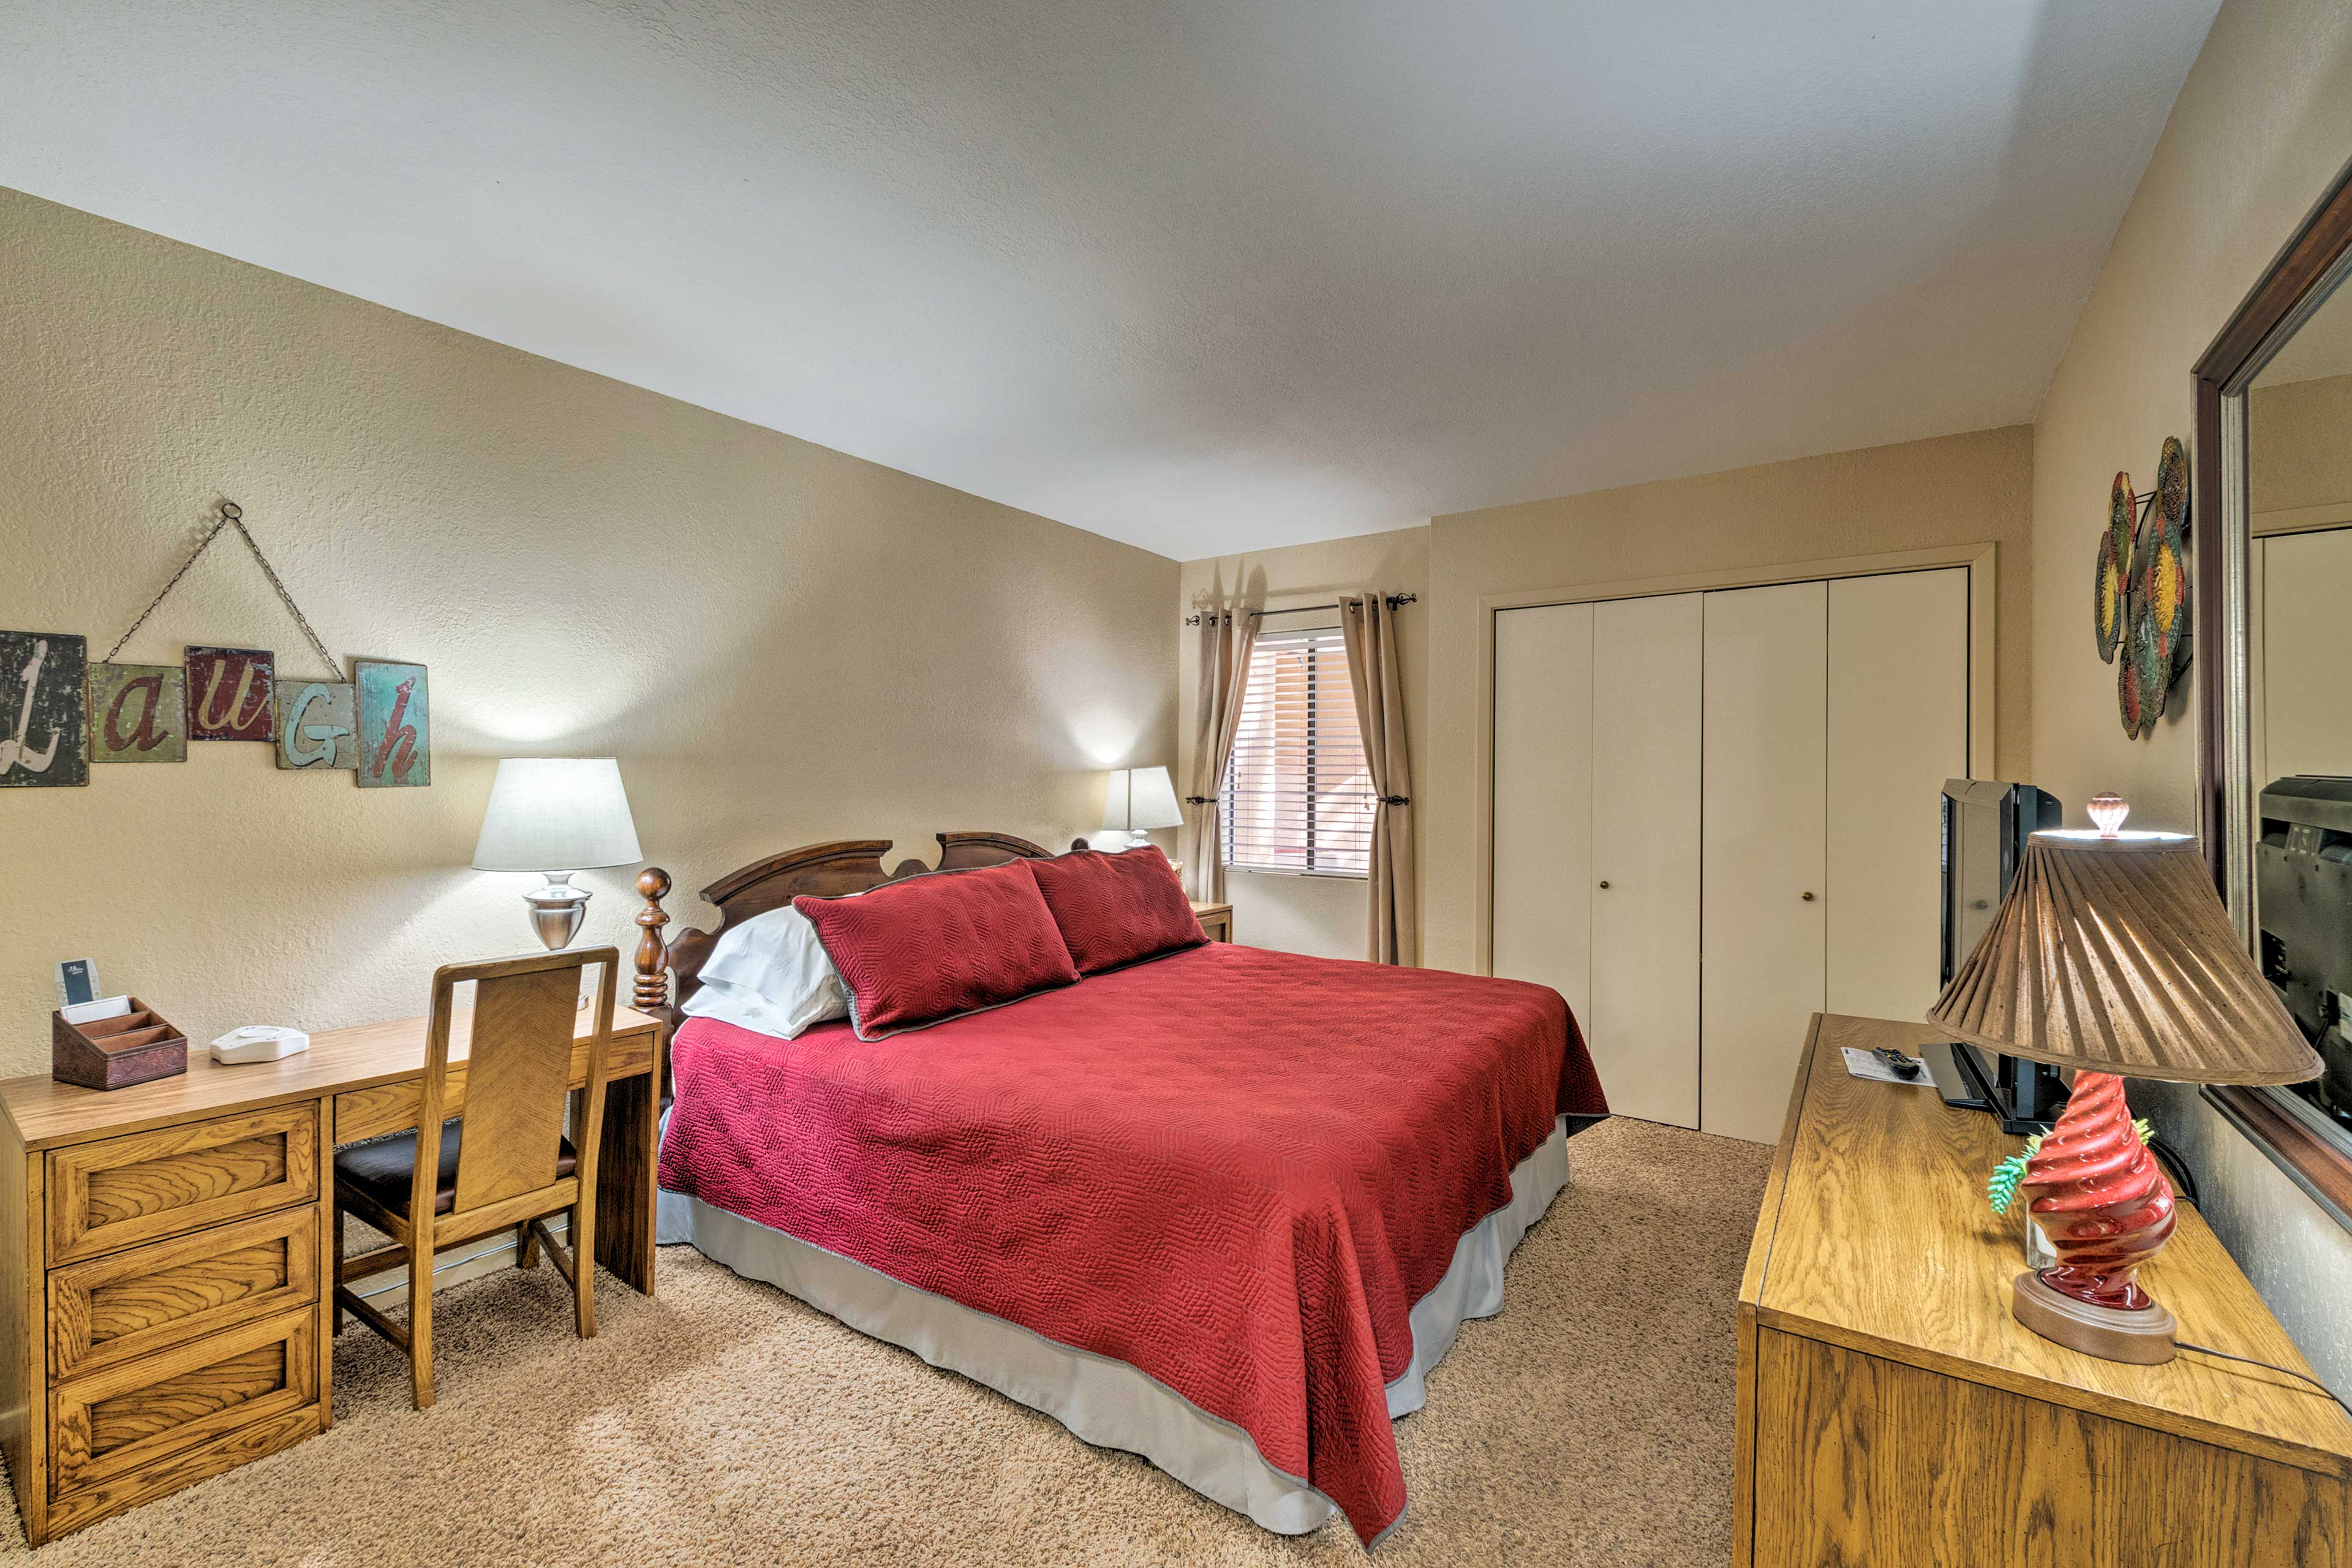 Enjoy the comfort of the king-sized bed in the master bedroom.